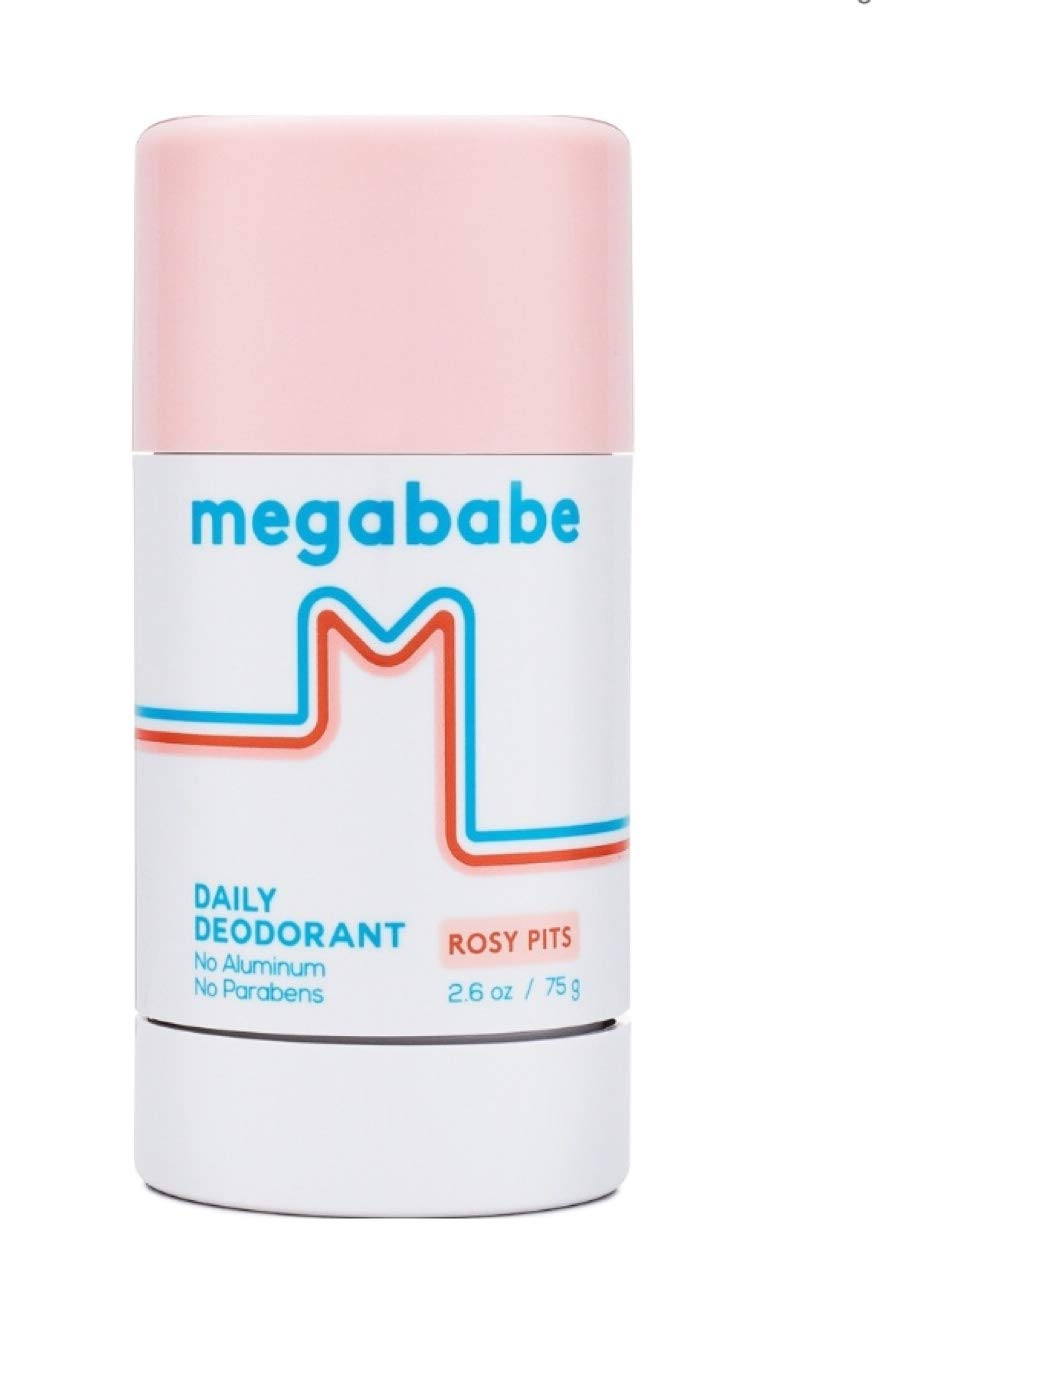 Megababe Rosy Pits Daily Deodorant by Texpertnmore